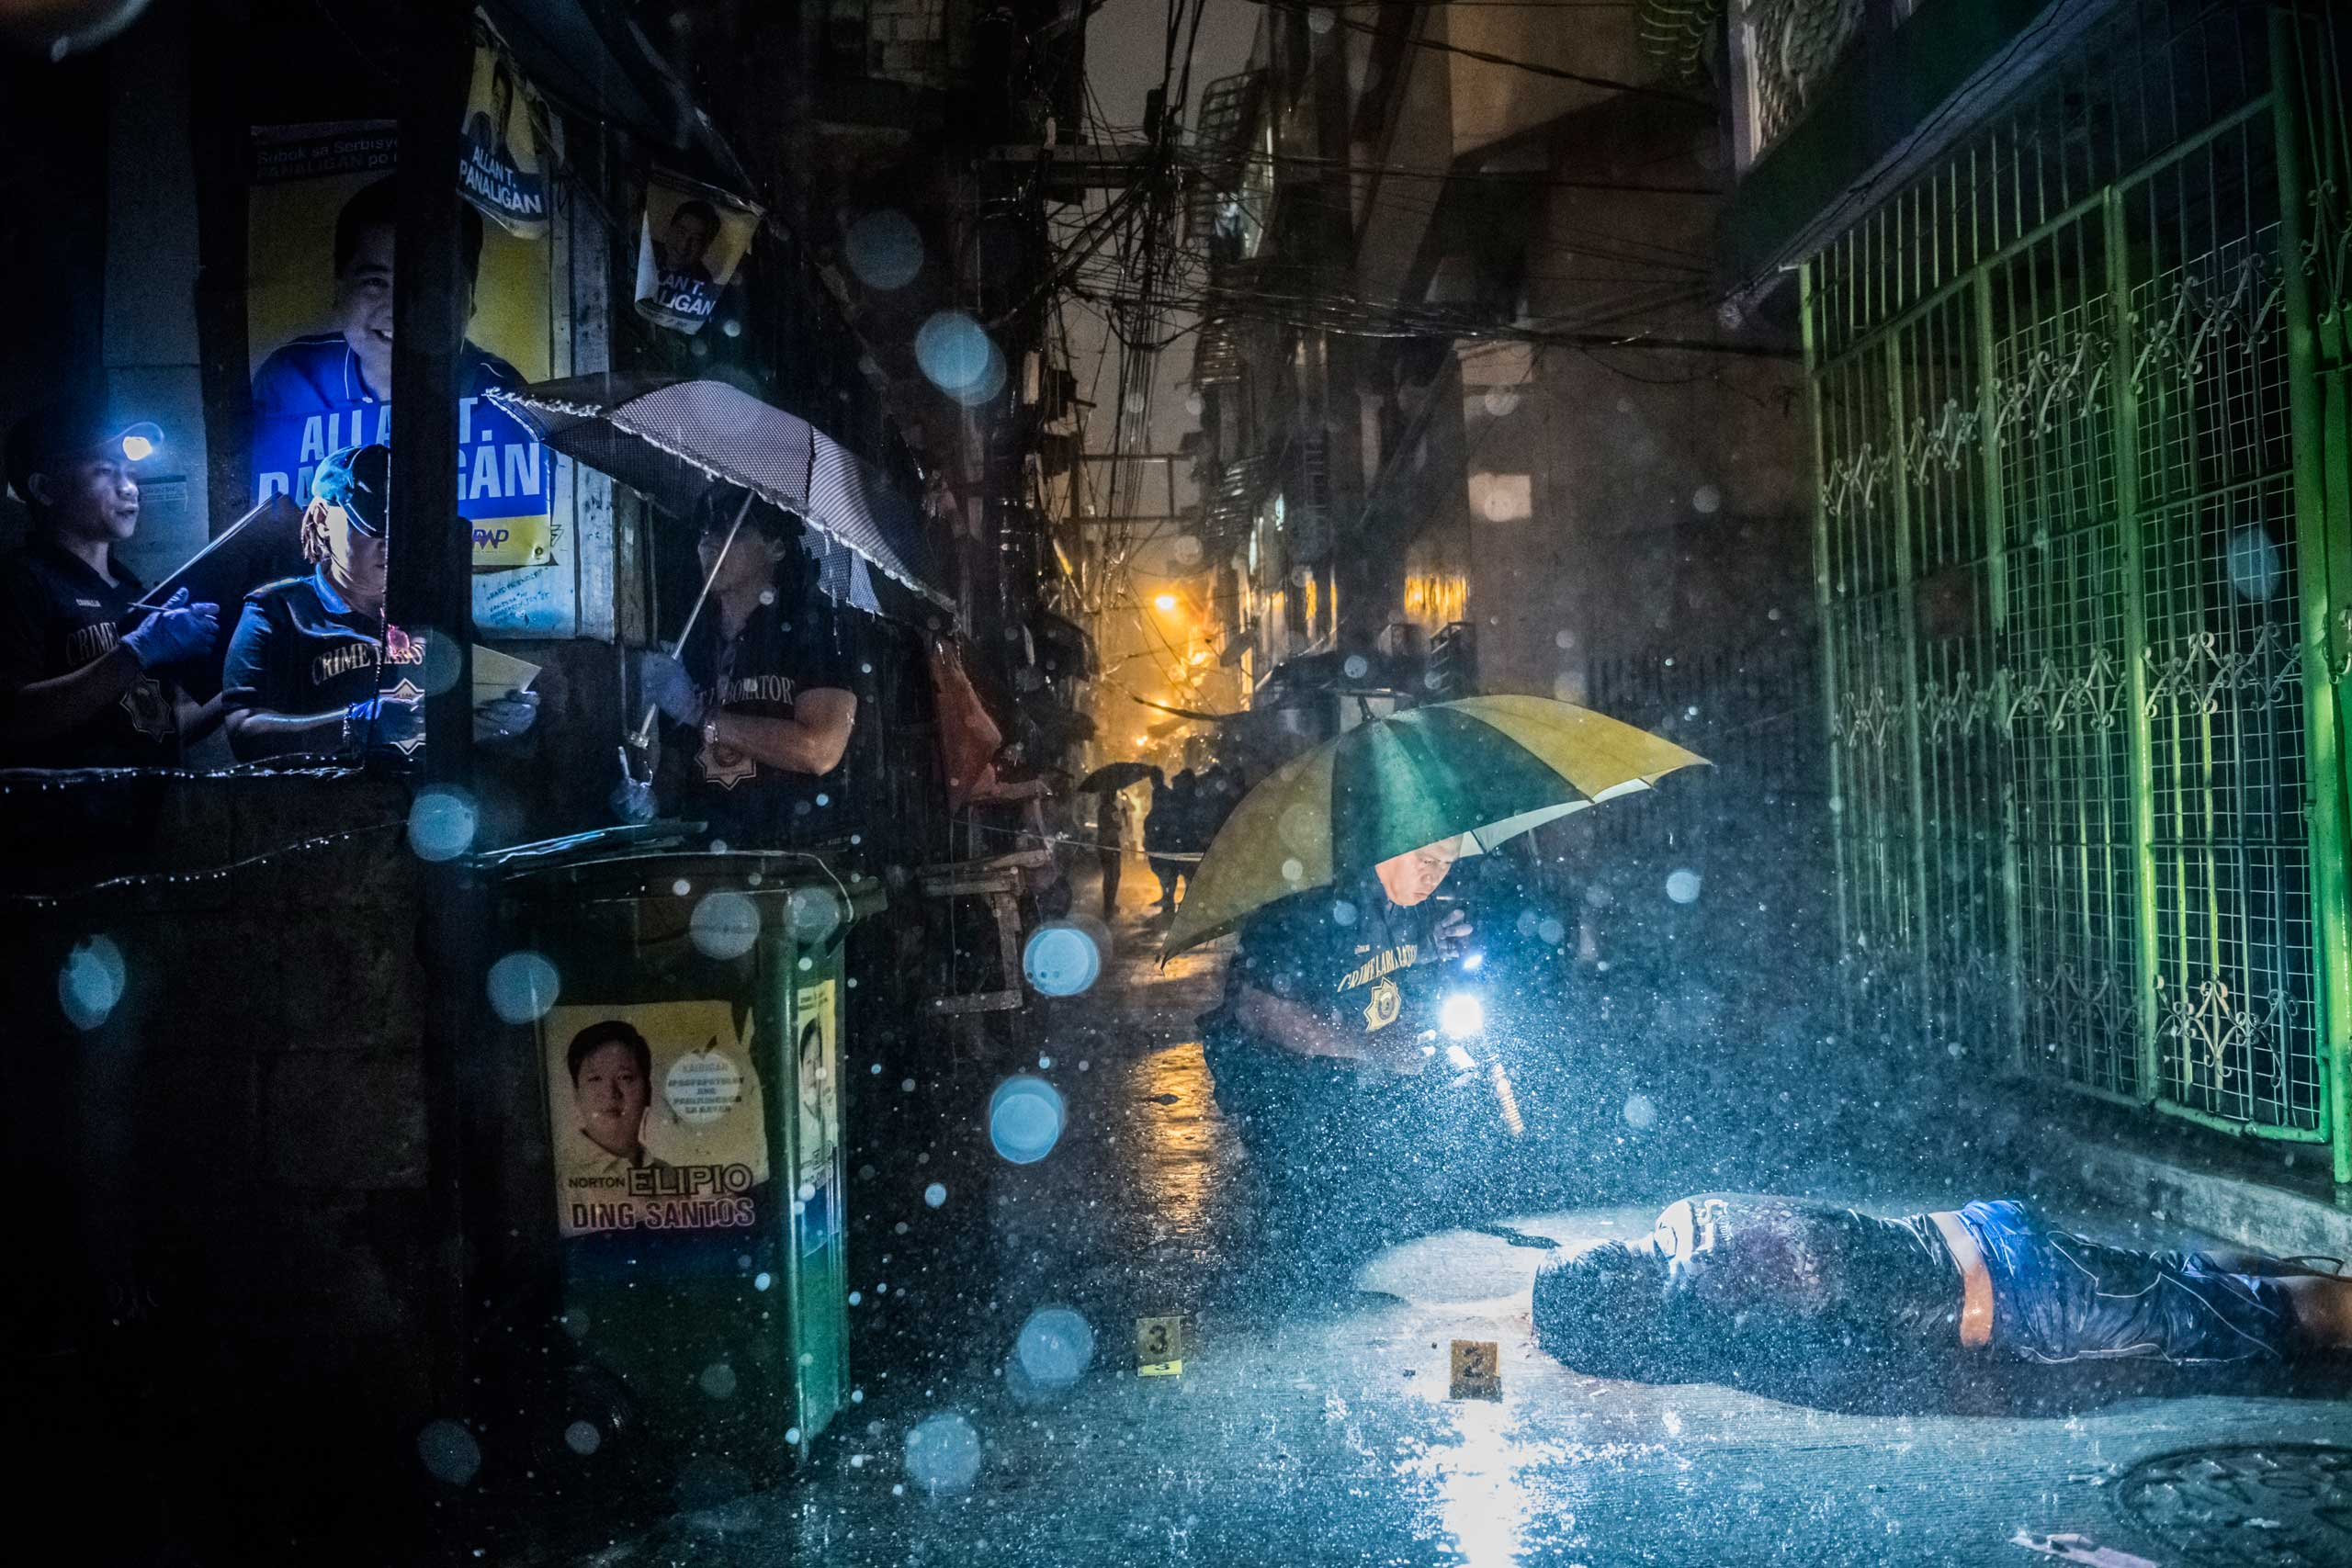 Heavy rain pours as Scene of the Crime Operatives investigate inside an alley on Oct. 11, 2016, where a victim, Romeo Joel Torres Fontanilla, 37, was killed by two unidentified gunmen riding motorcycles in the early morning in Manila, Philippines.